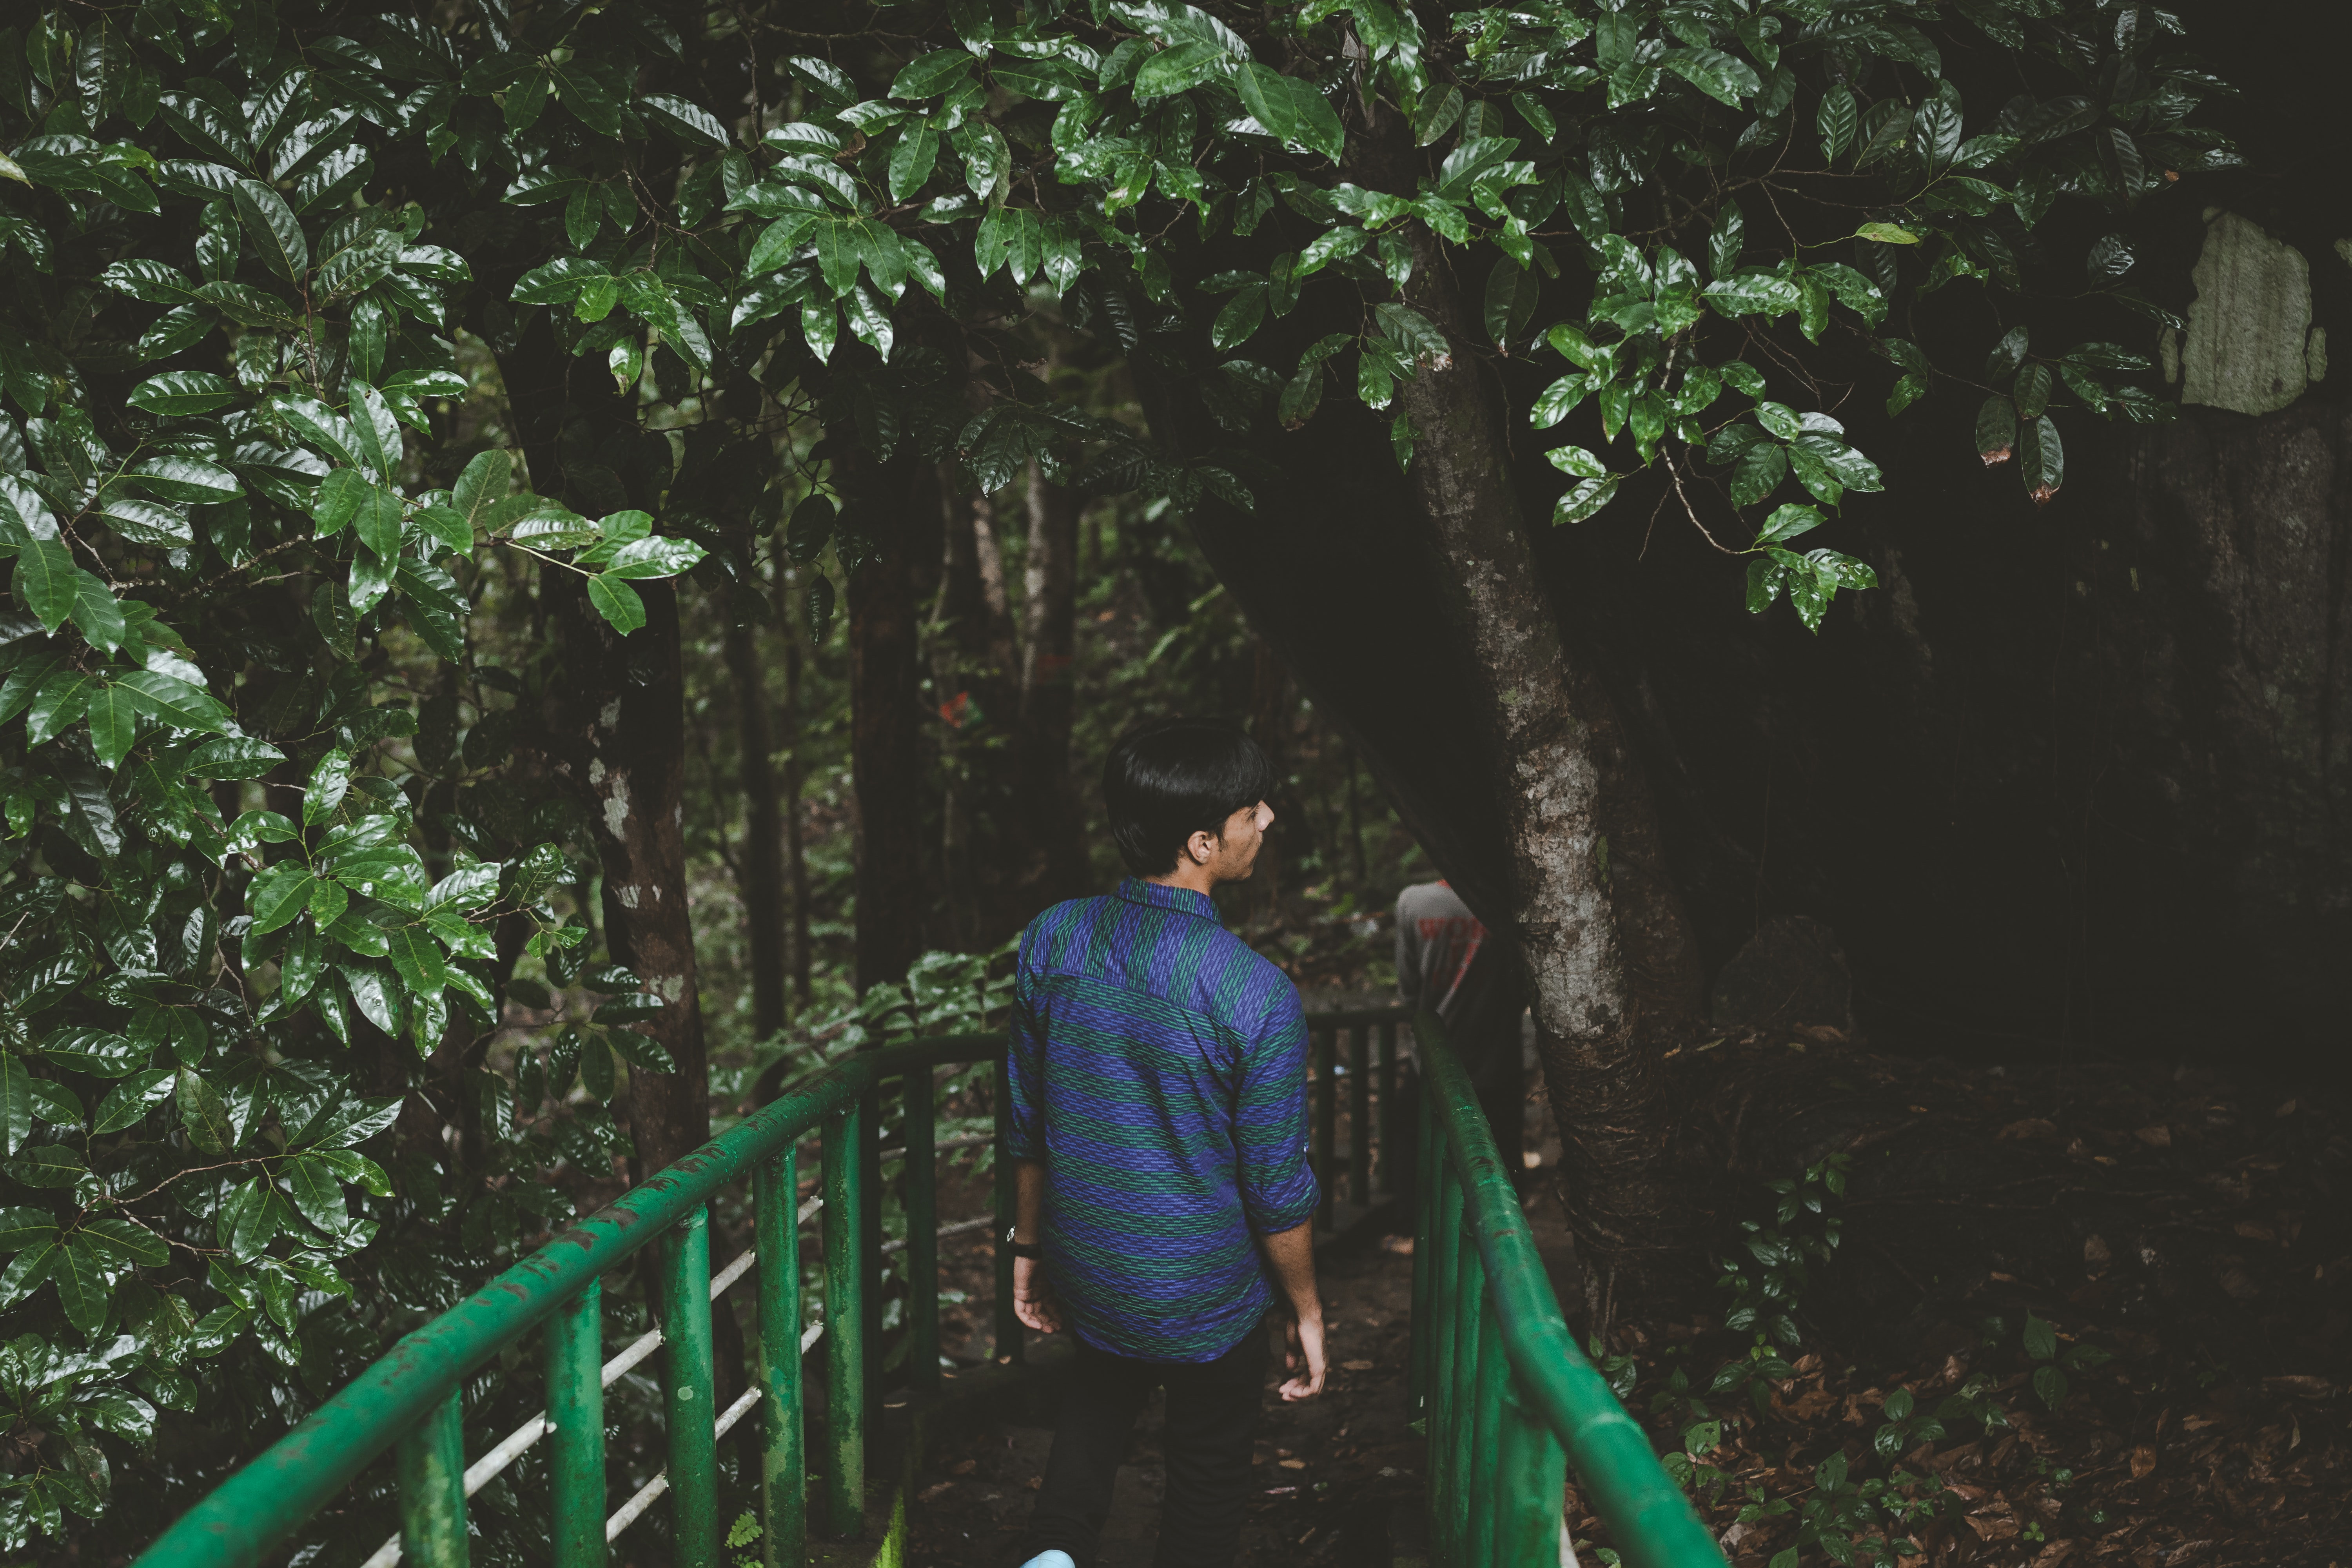 A person walks down a path with green railings through a vibrant forest